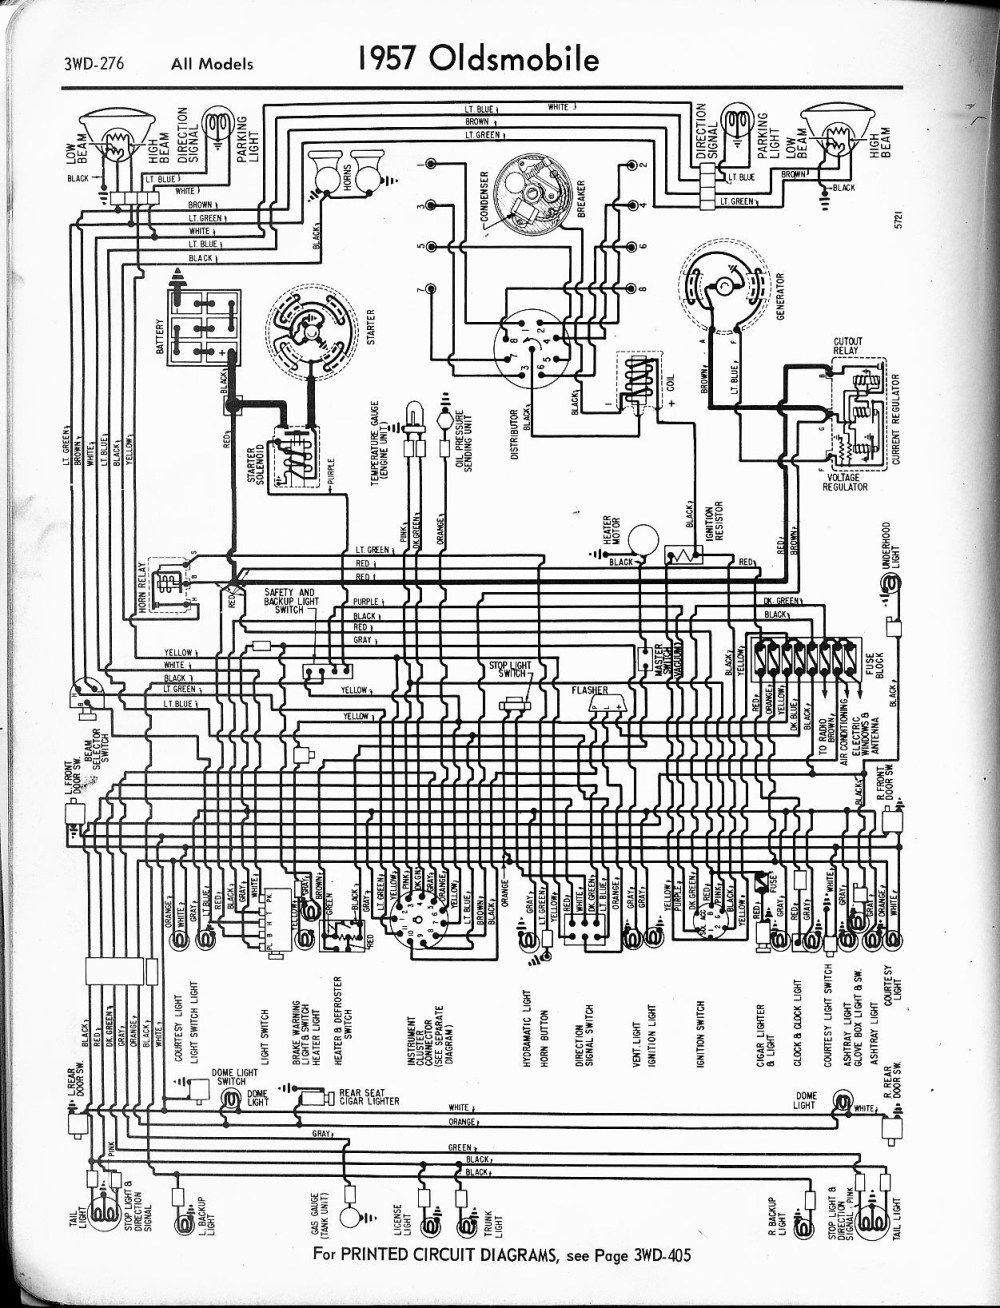 medium resolution of wiring diagram for 2001 oldsmobile alero wiring diagram val 2001 oldsmobile alero wiring diagram